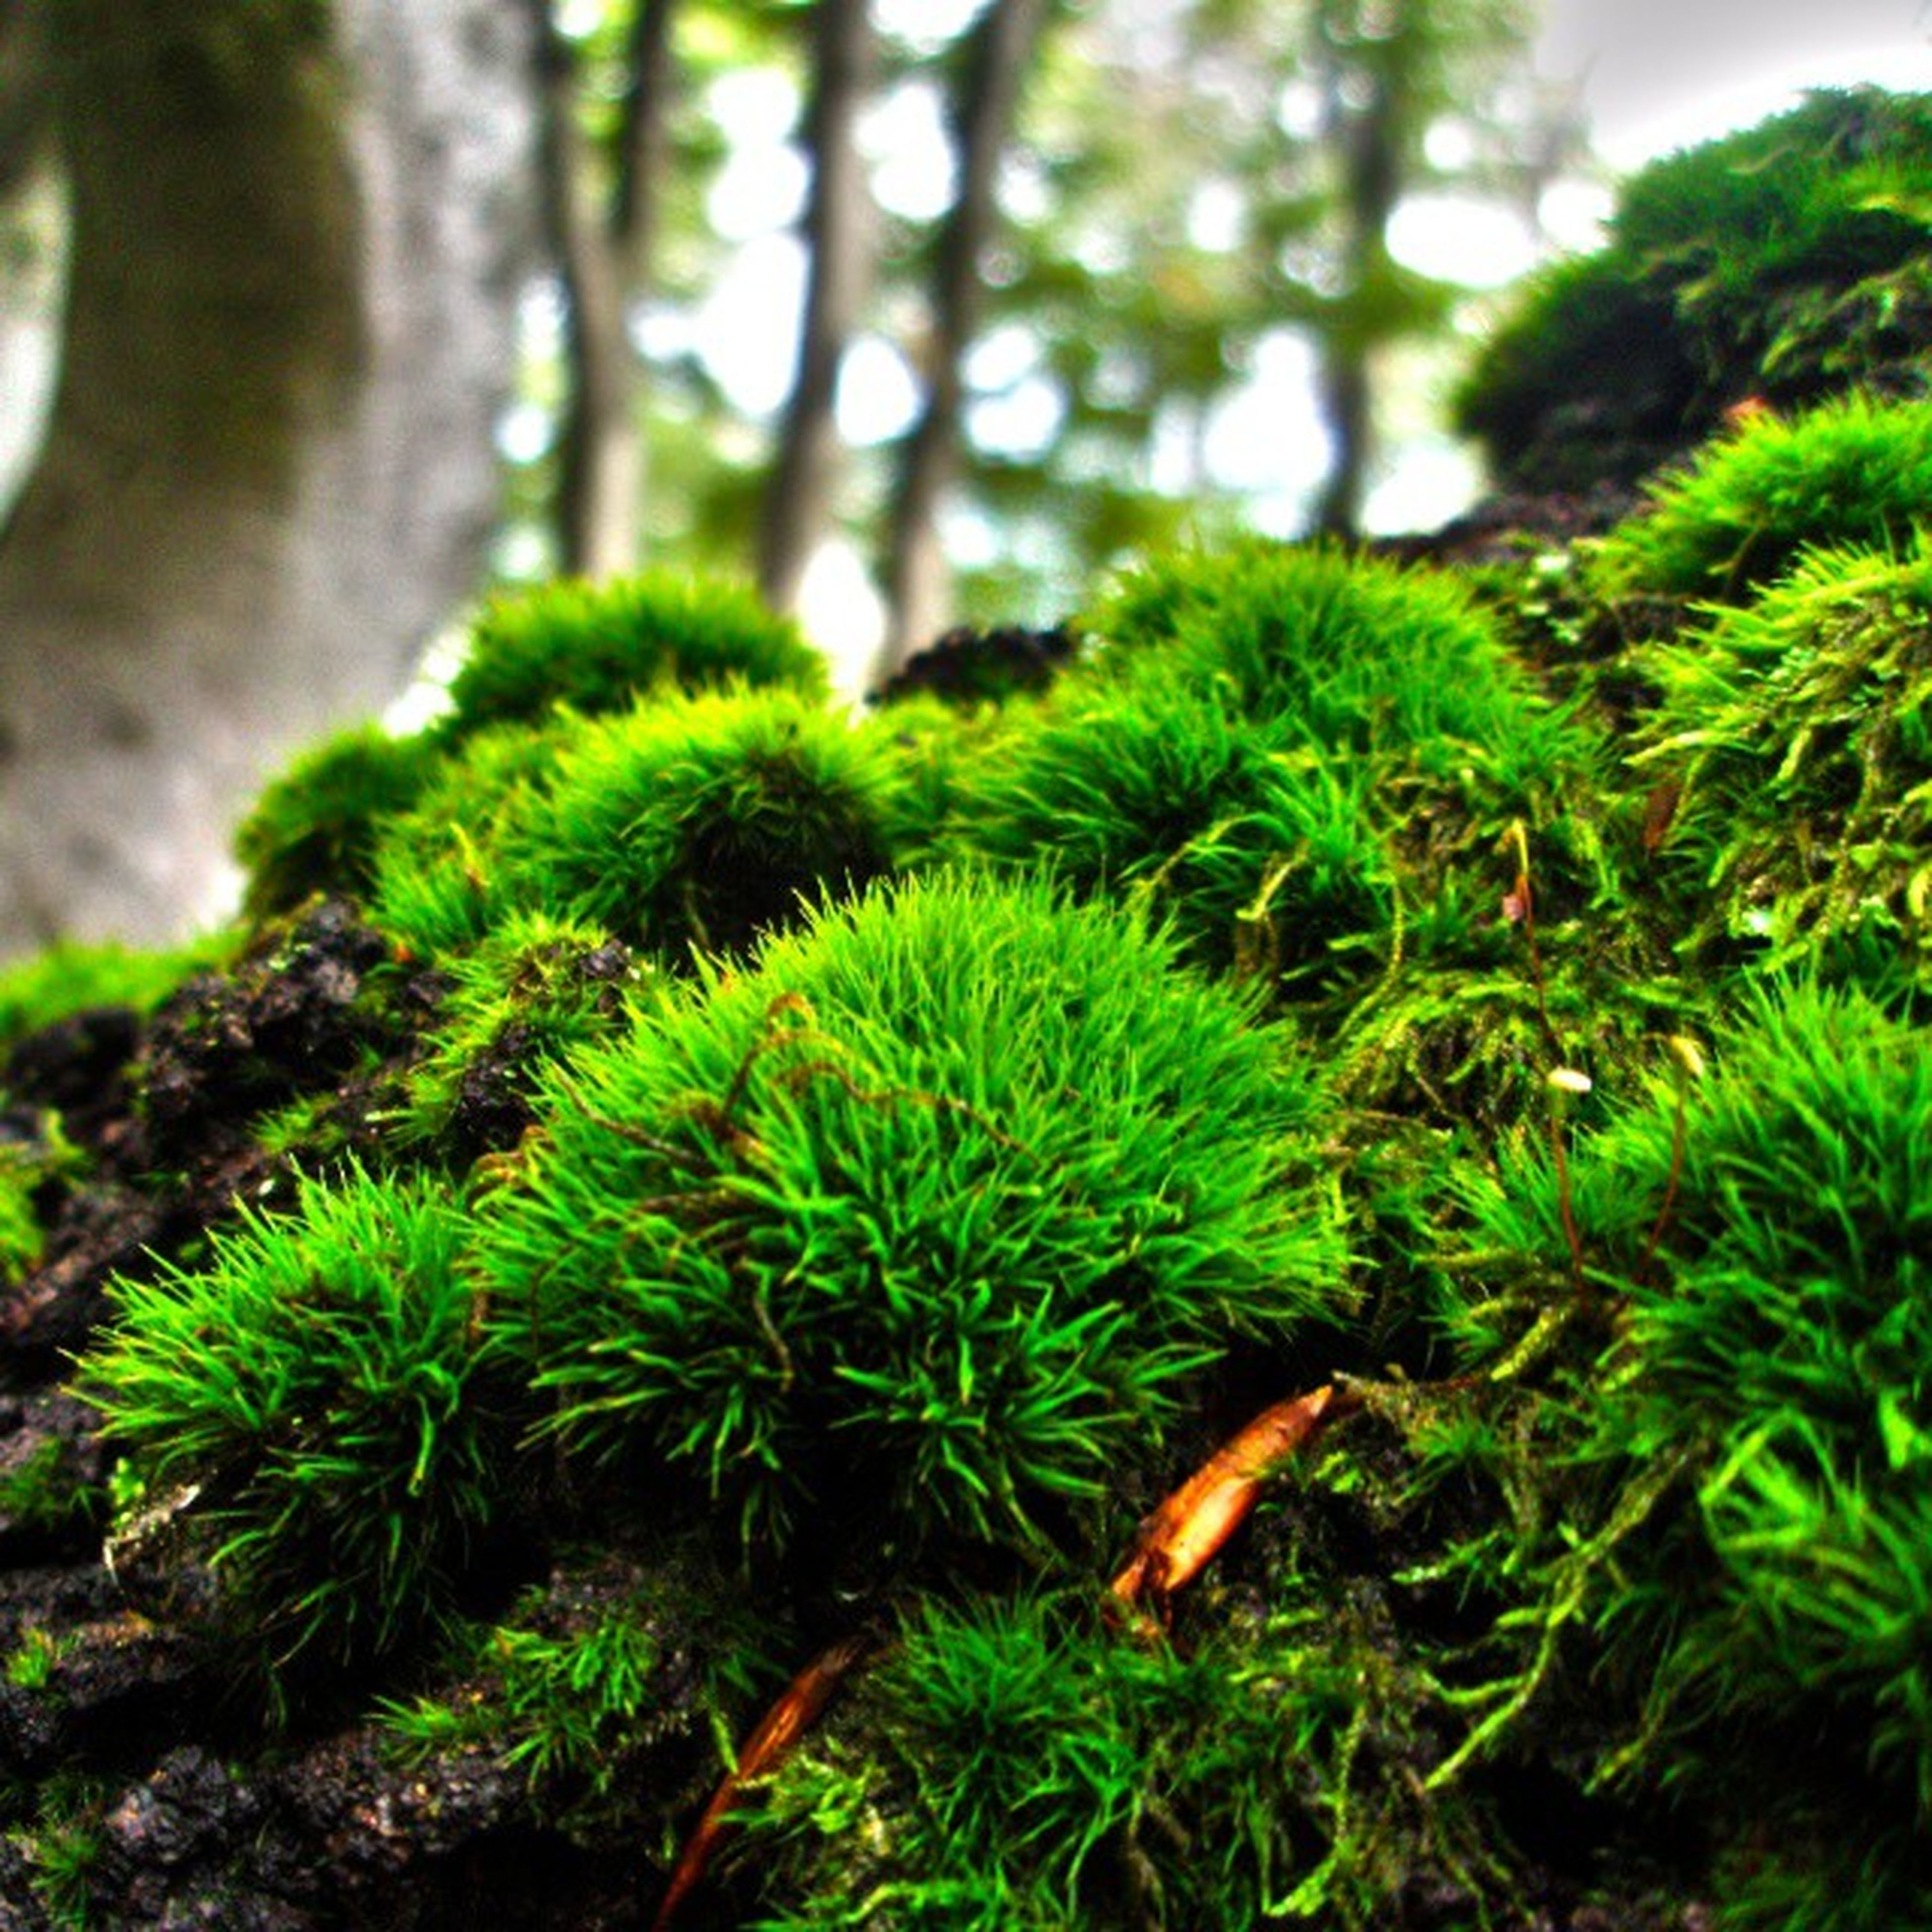 green color, growth, plant, nature, close-up, focus on foreground, leaf, tree, growing, green, beauty in nature, tranquility, branch, tree trunk, forest, day, outdoors, moss, sunlight, no people